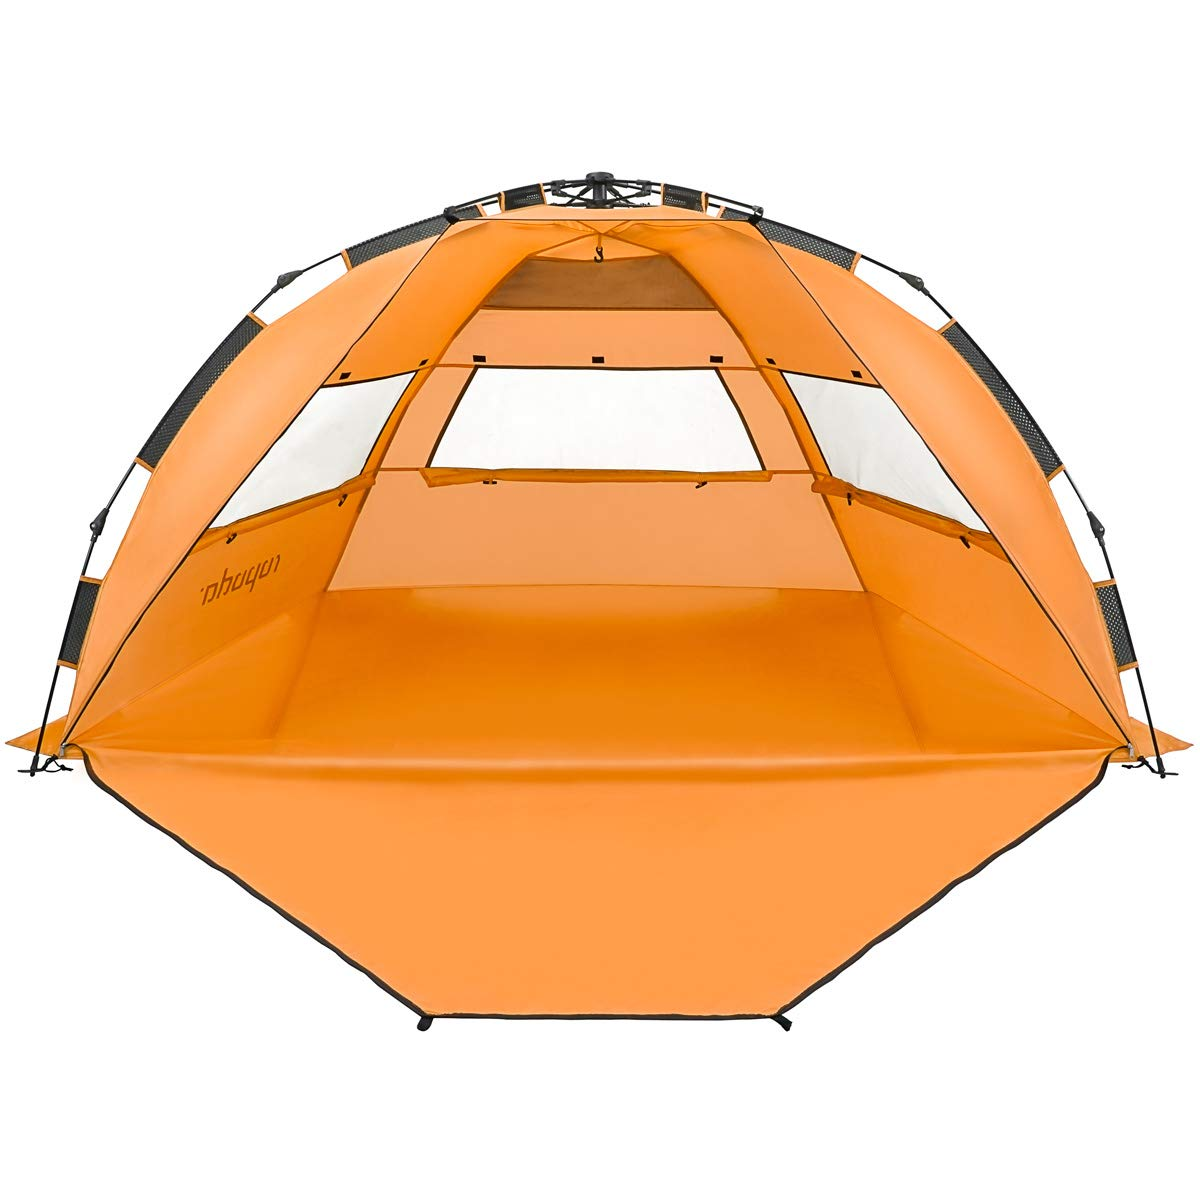 ROPODA  Pop Up Beach Tent - Easy to Set Up, Portable Beach Shade with UPF 50+ UV Protection for Kids & Family (Orange) by ROPODA